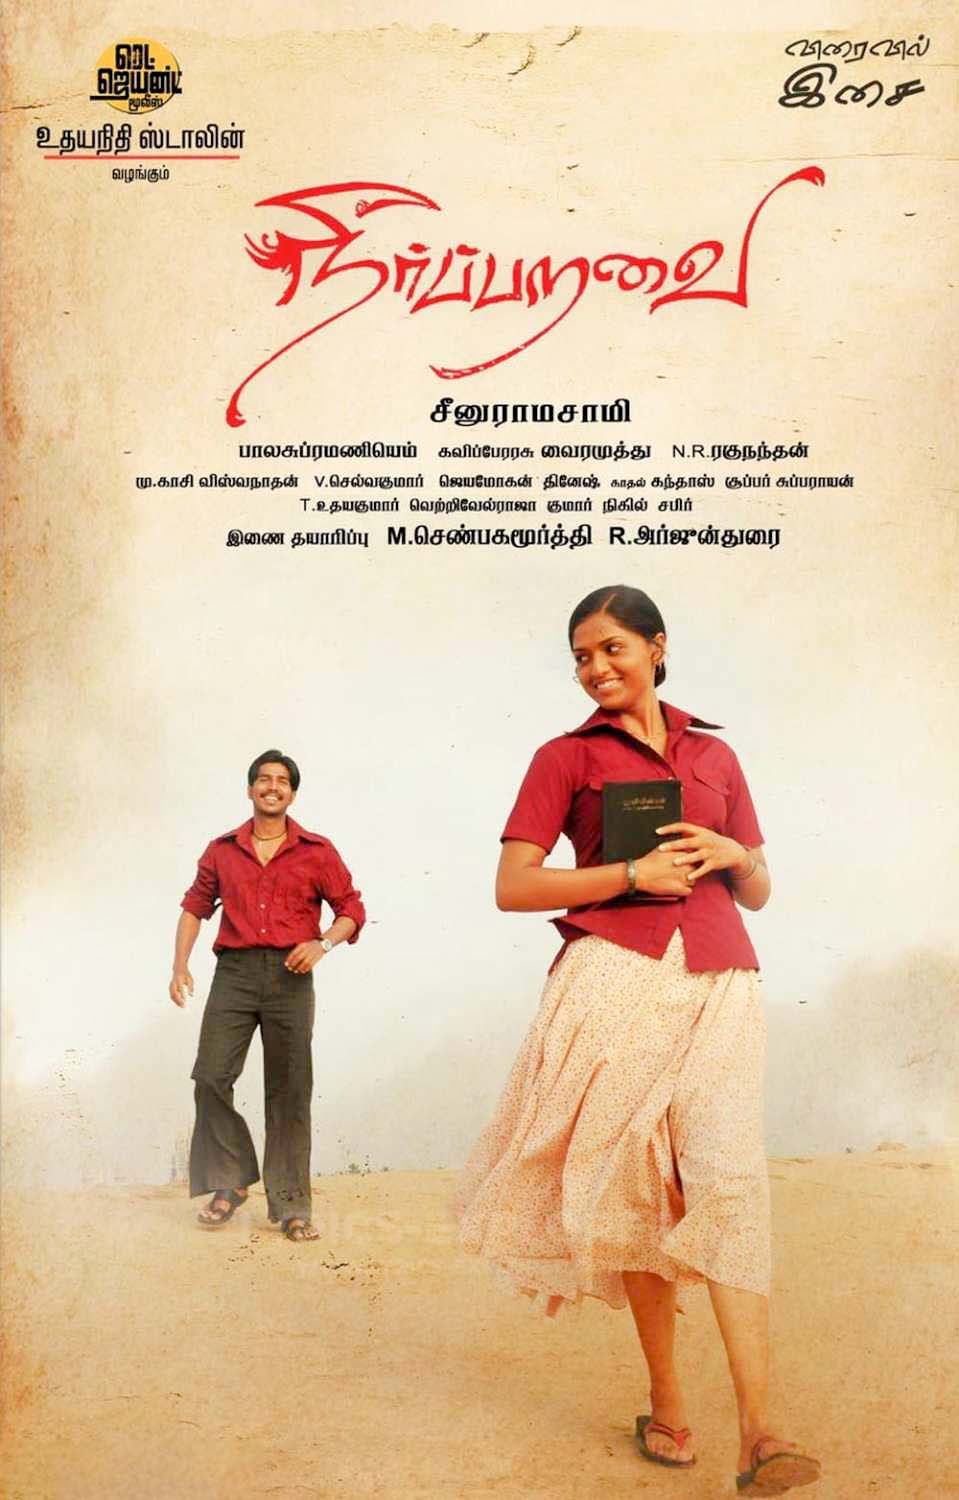 You are currently viewing Meenuku Song Lyrics in English – Neer Paravai Tamil lyrics Download in pdf